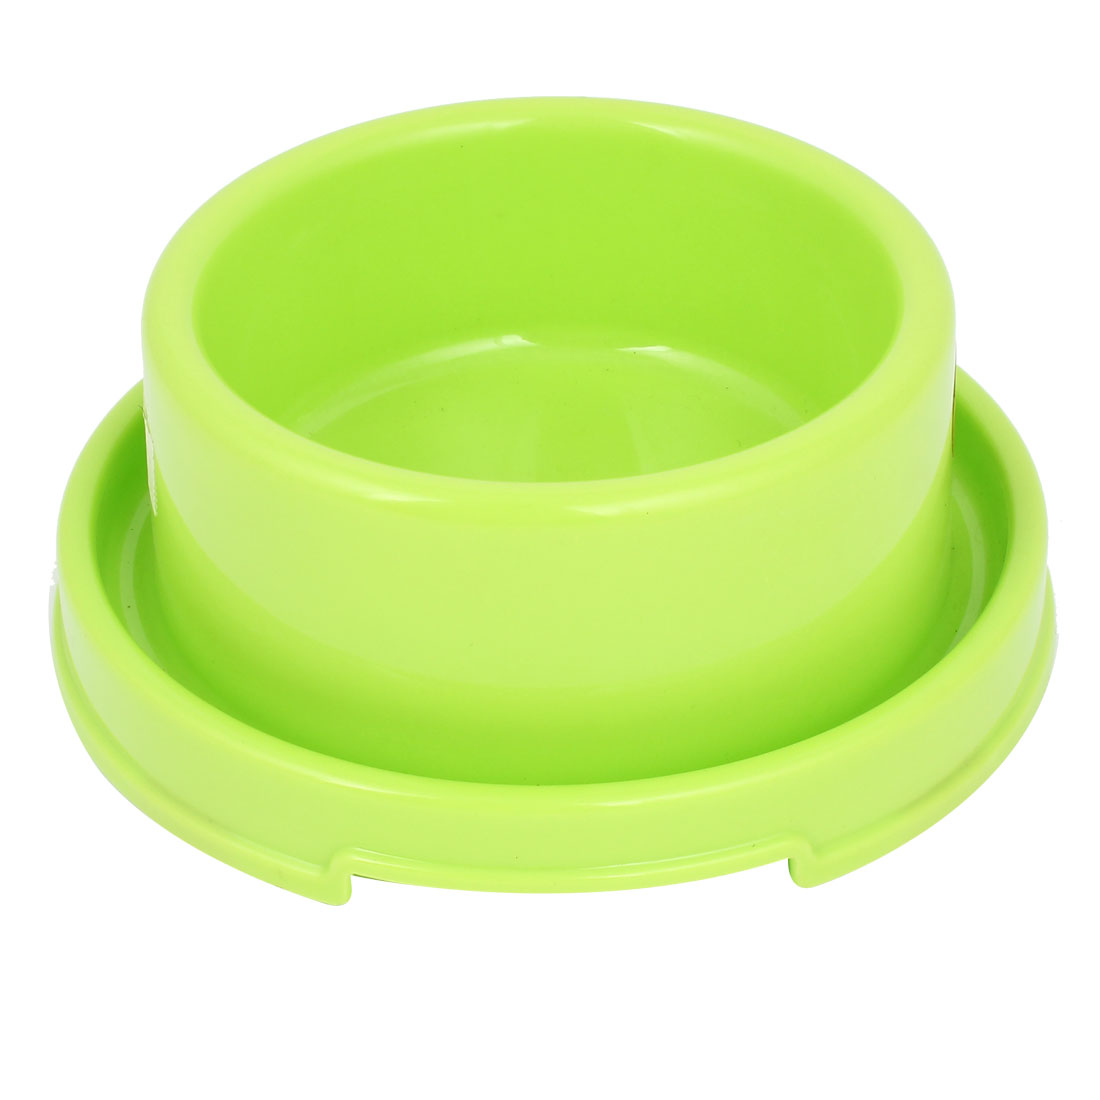 18cm Diameter 7cm Height Doggie Dog Pet Plastic Eat Food Water Bowl Dish Green